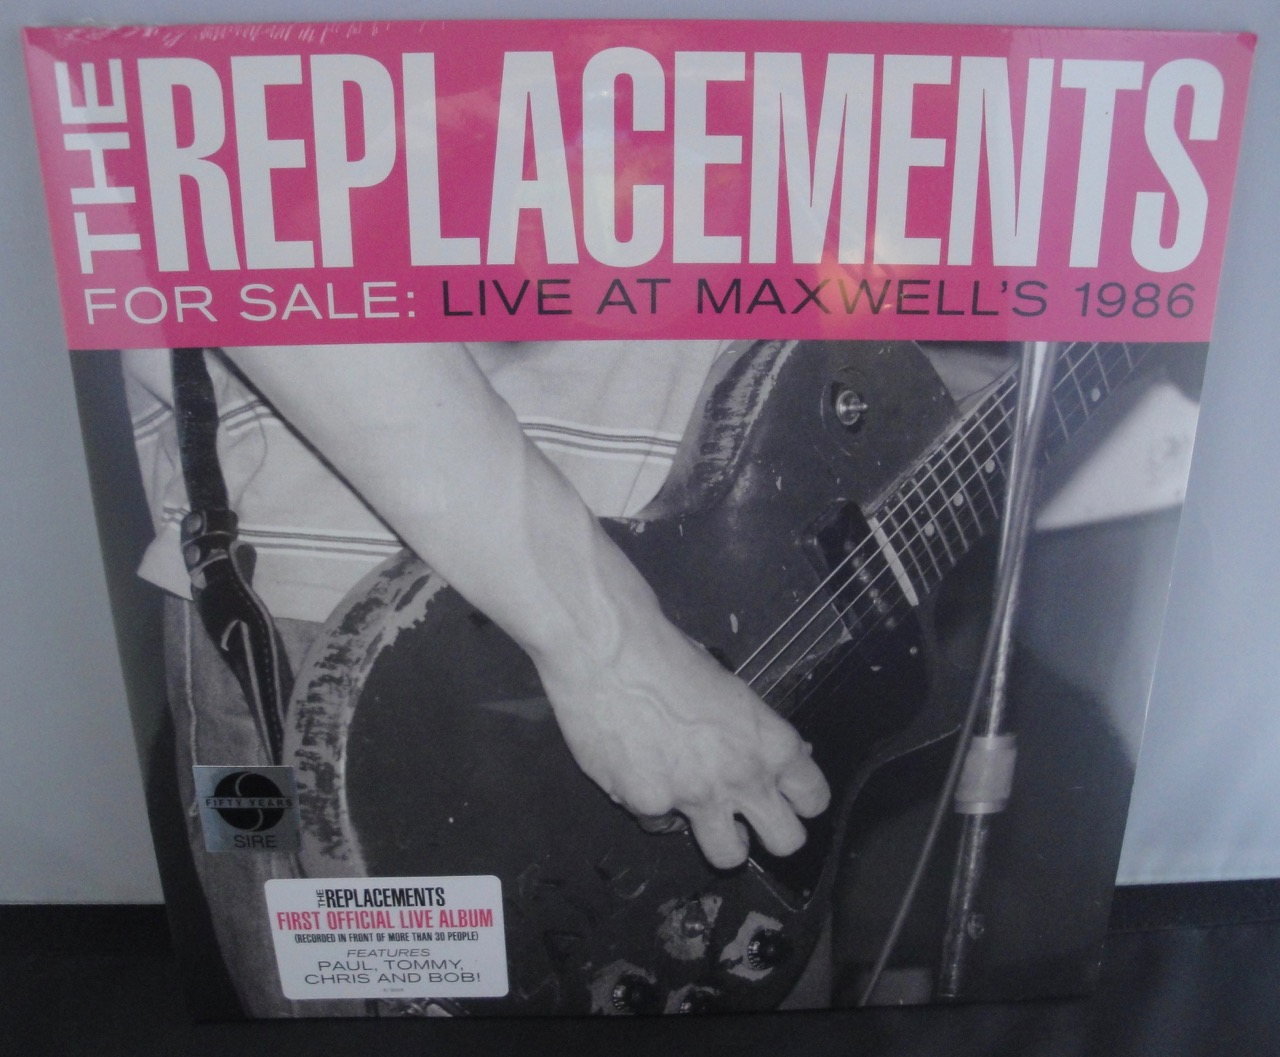 The Replacements - For Sale: Live At Maxwell's 1986 - 2XLP Vinyl, 2017